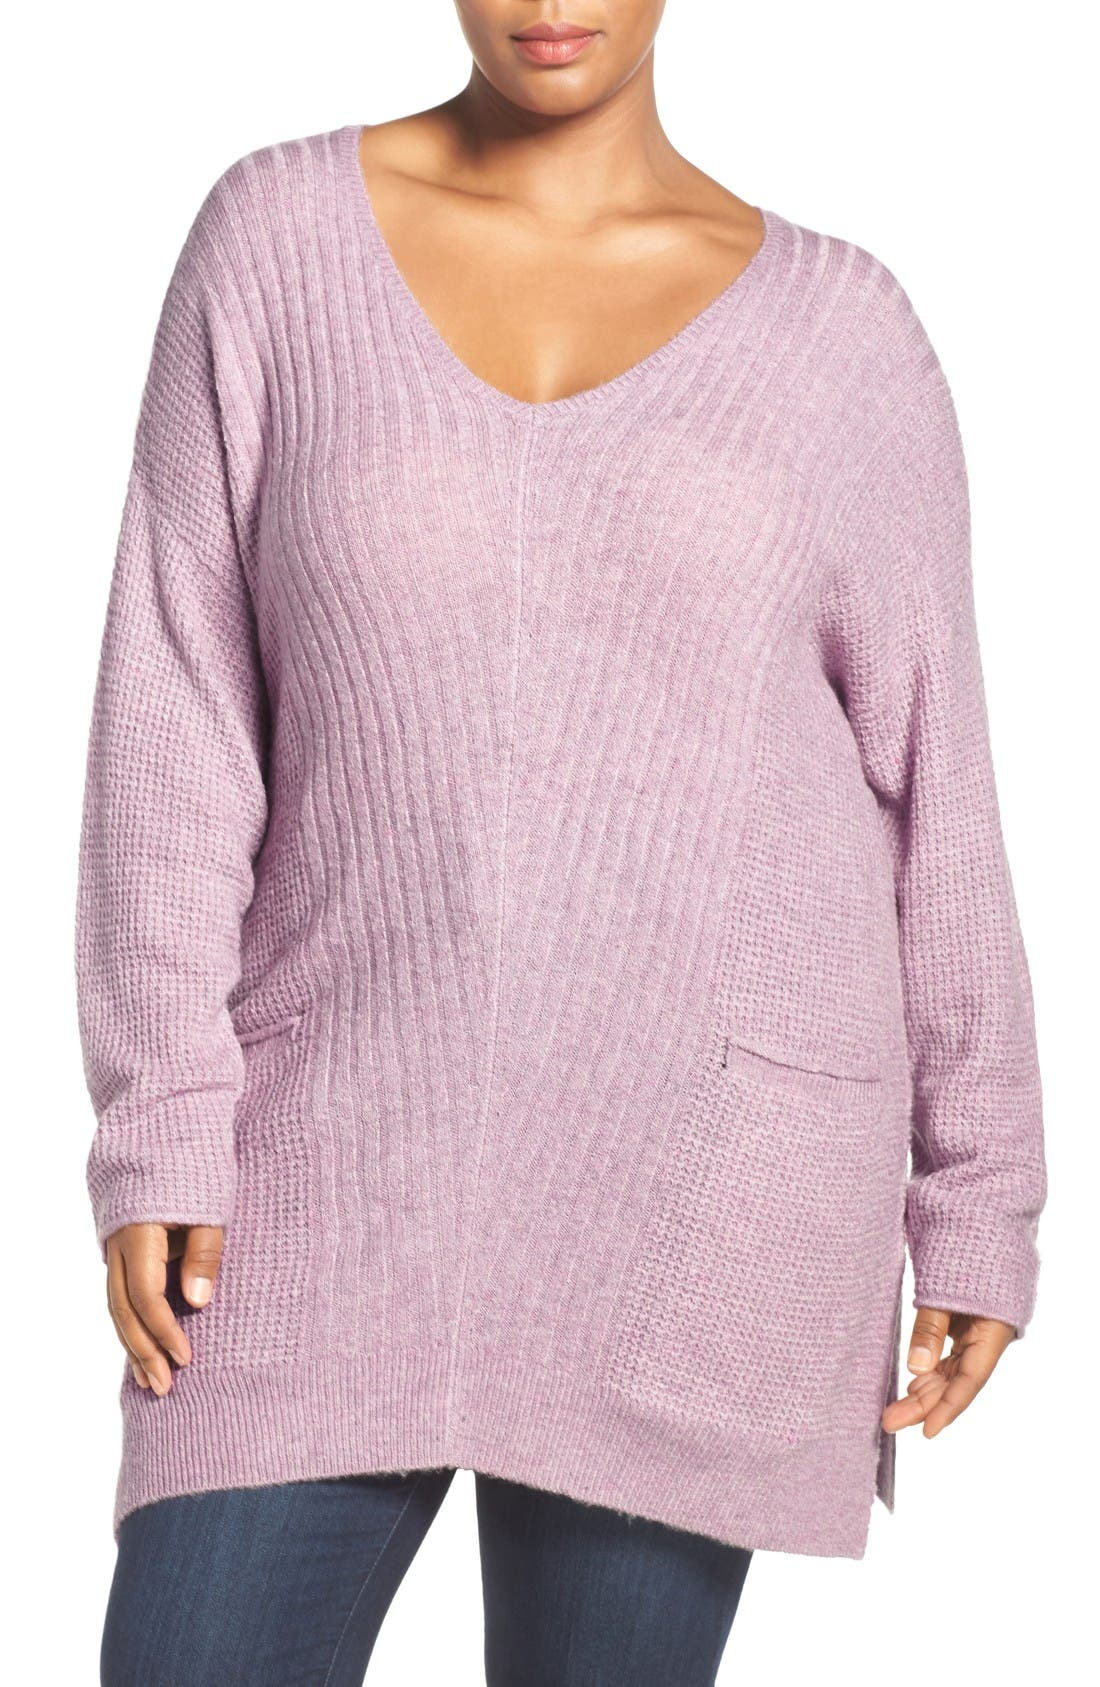 Alternate Image 1 Selected - Caslon® Mixed Stitch V-Neck Tunic Sweater (Plus Size)